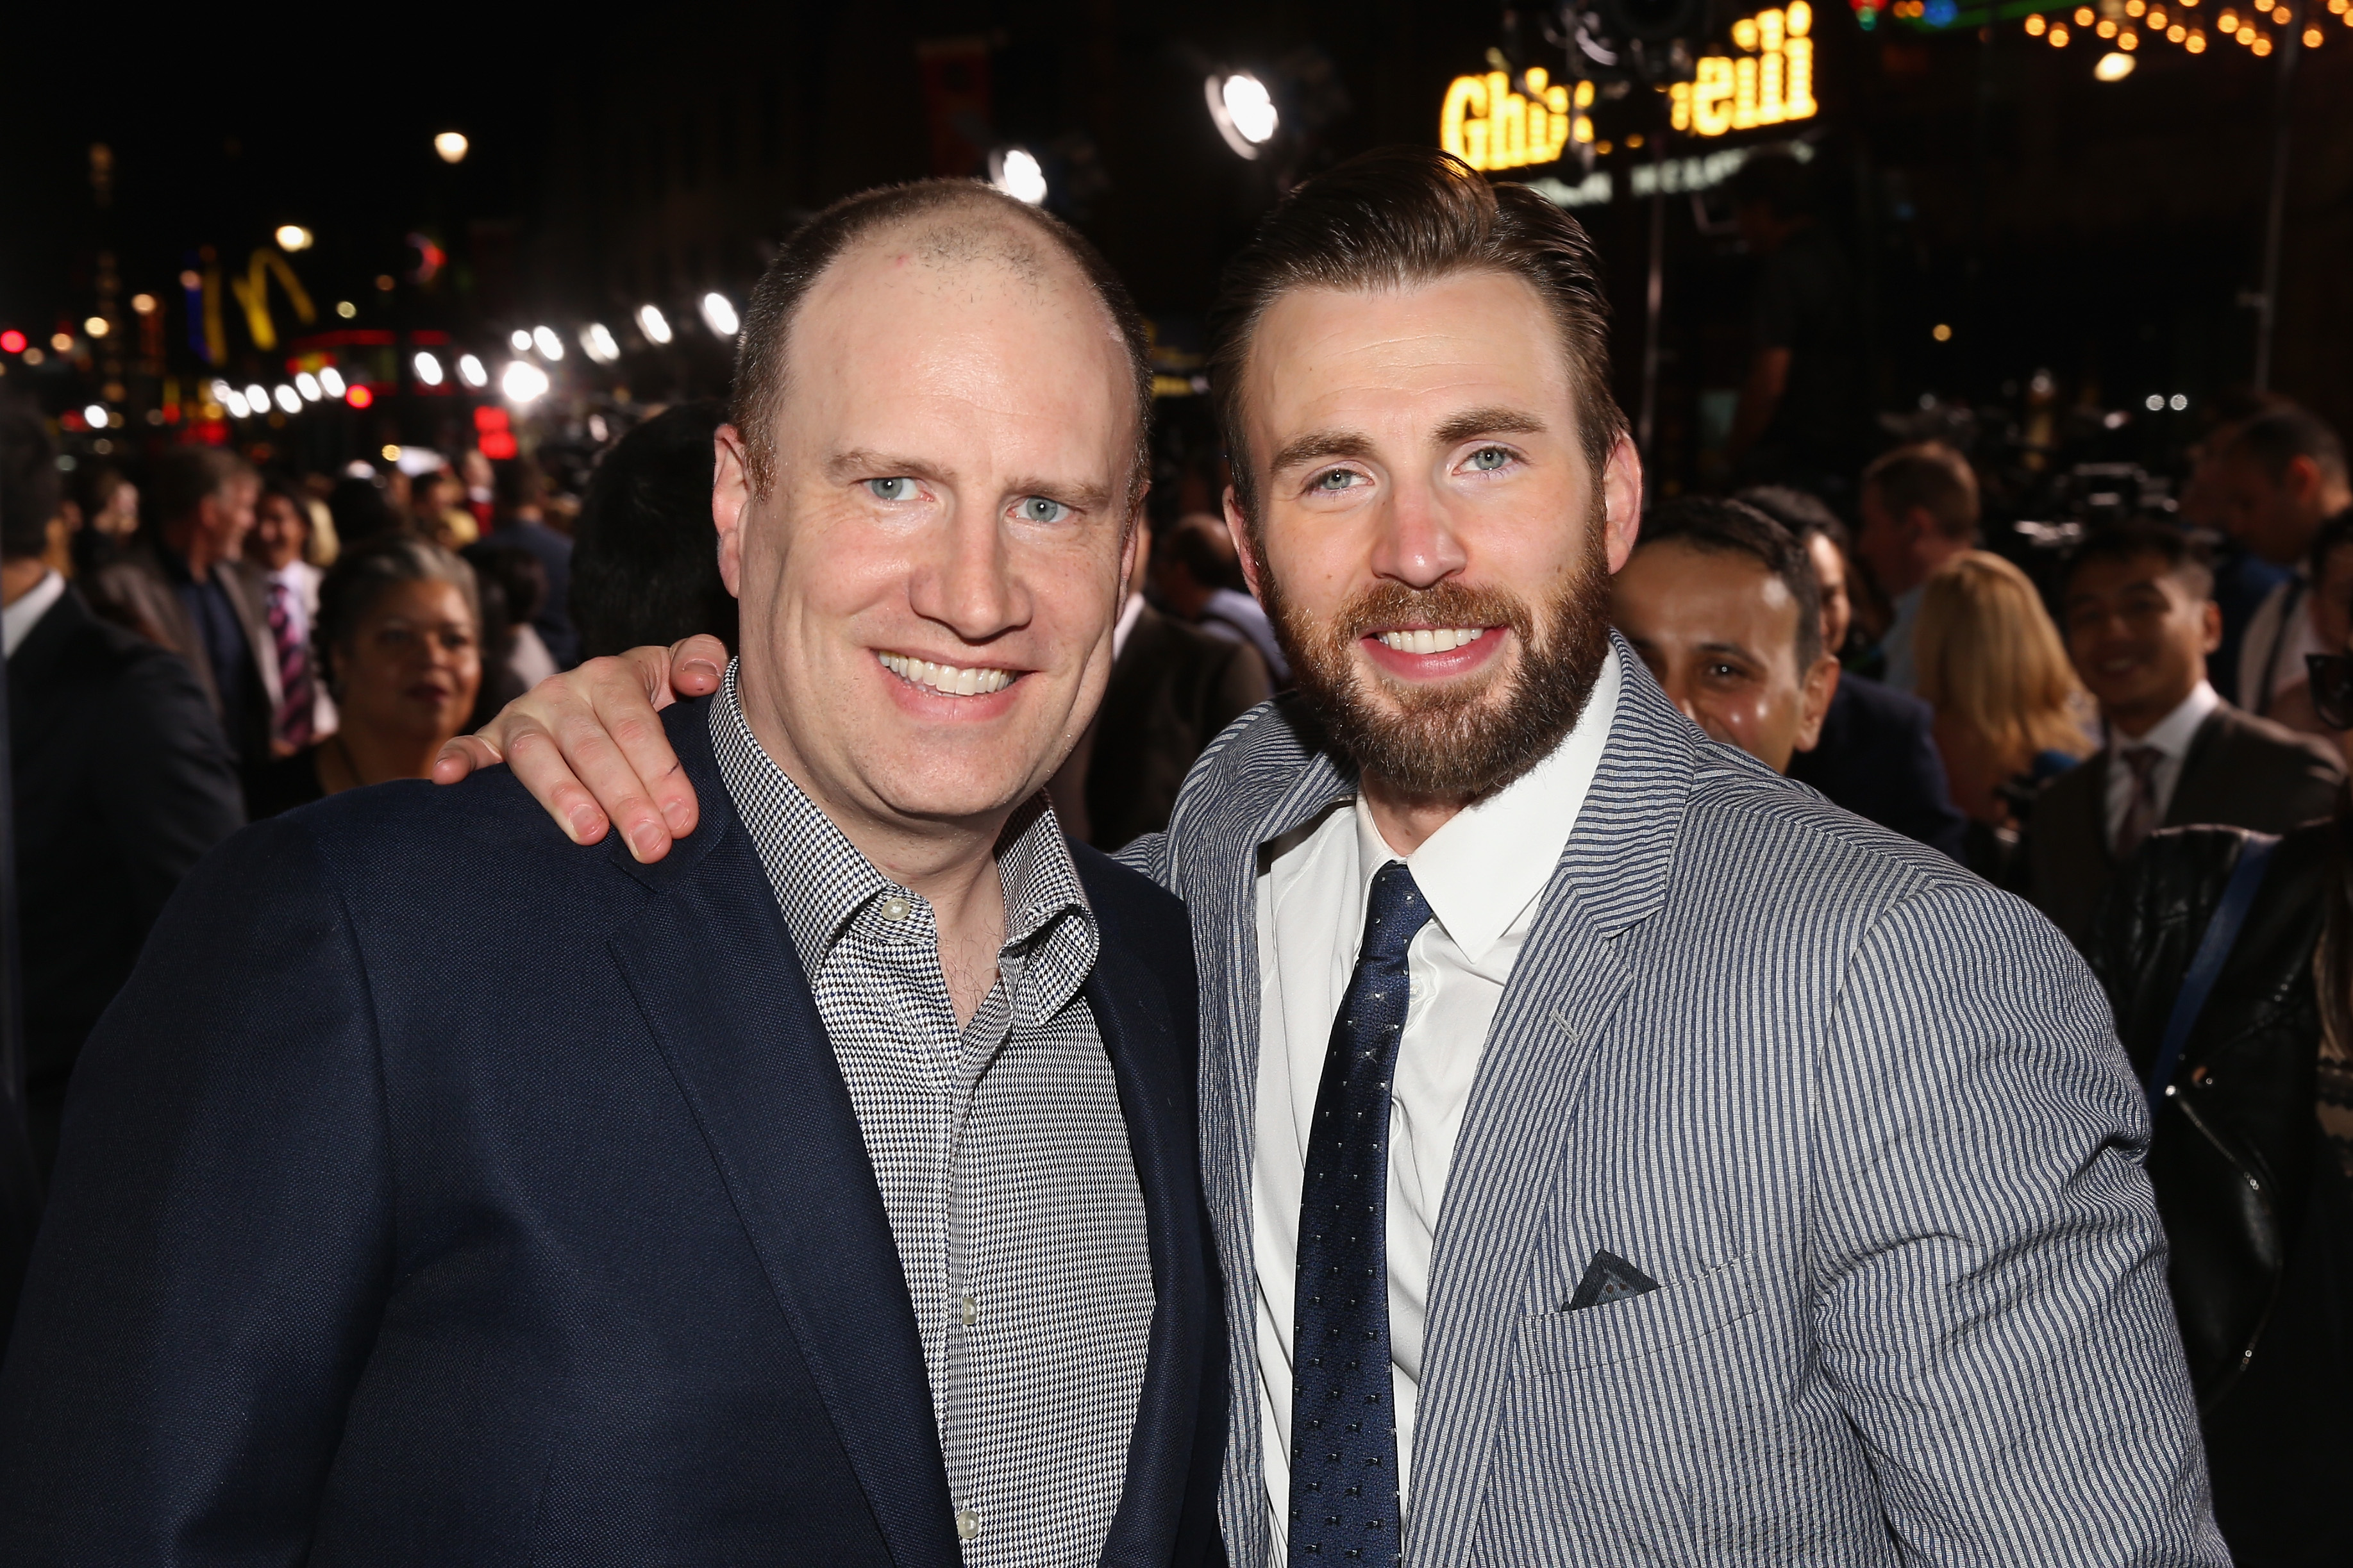 Chris Evans and Kevin Feige